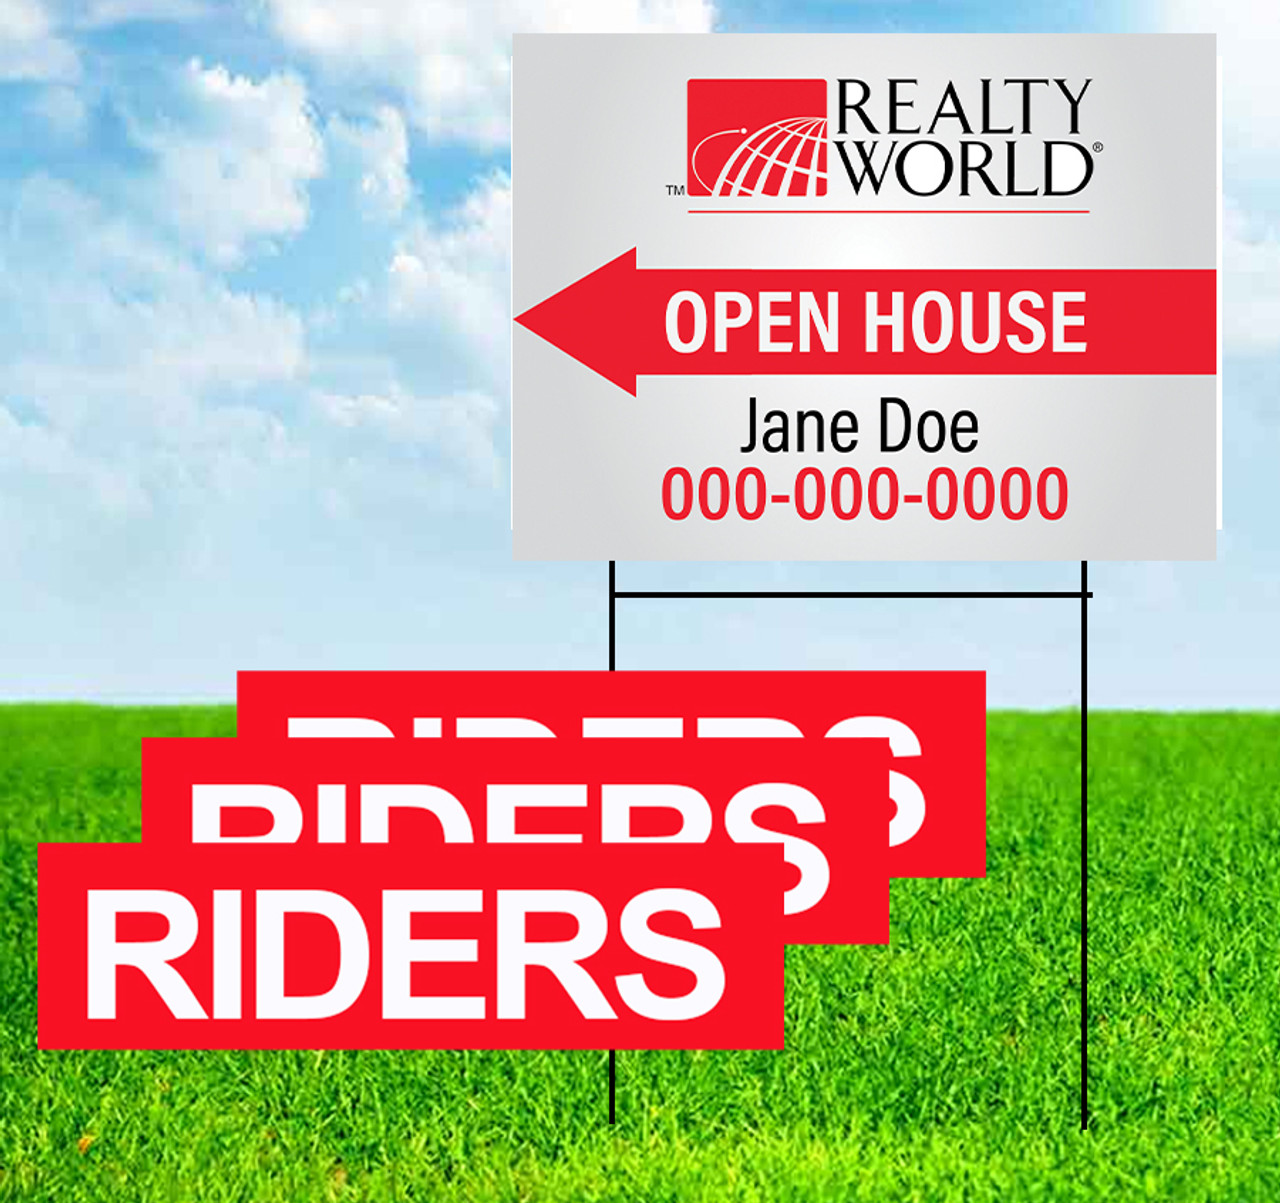 Realty World Open House and Riders